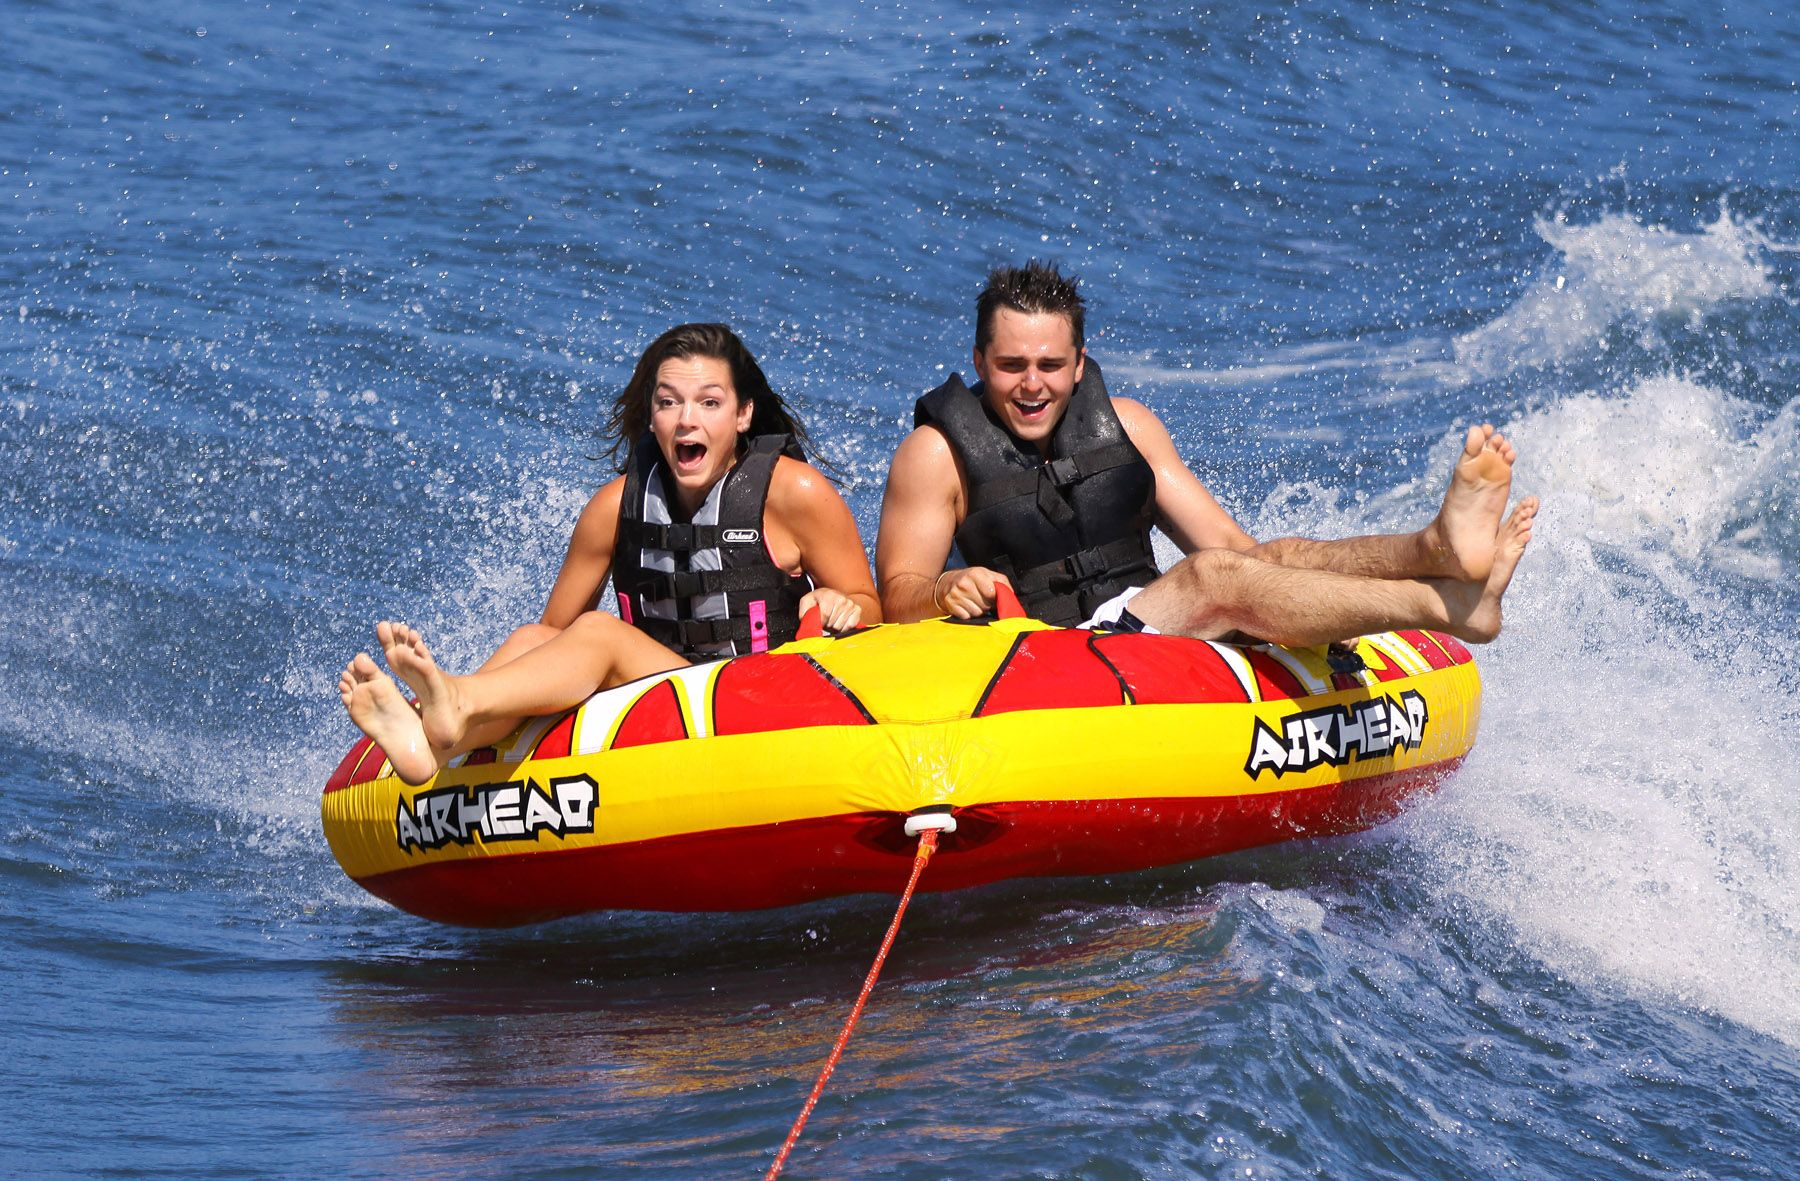 Airhead Blast Rider 2 Donut Inflatable Towable Fun 90 Tow Harness